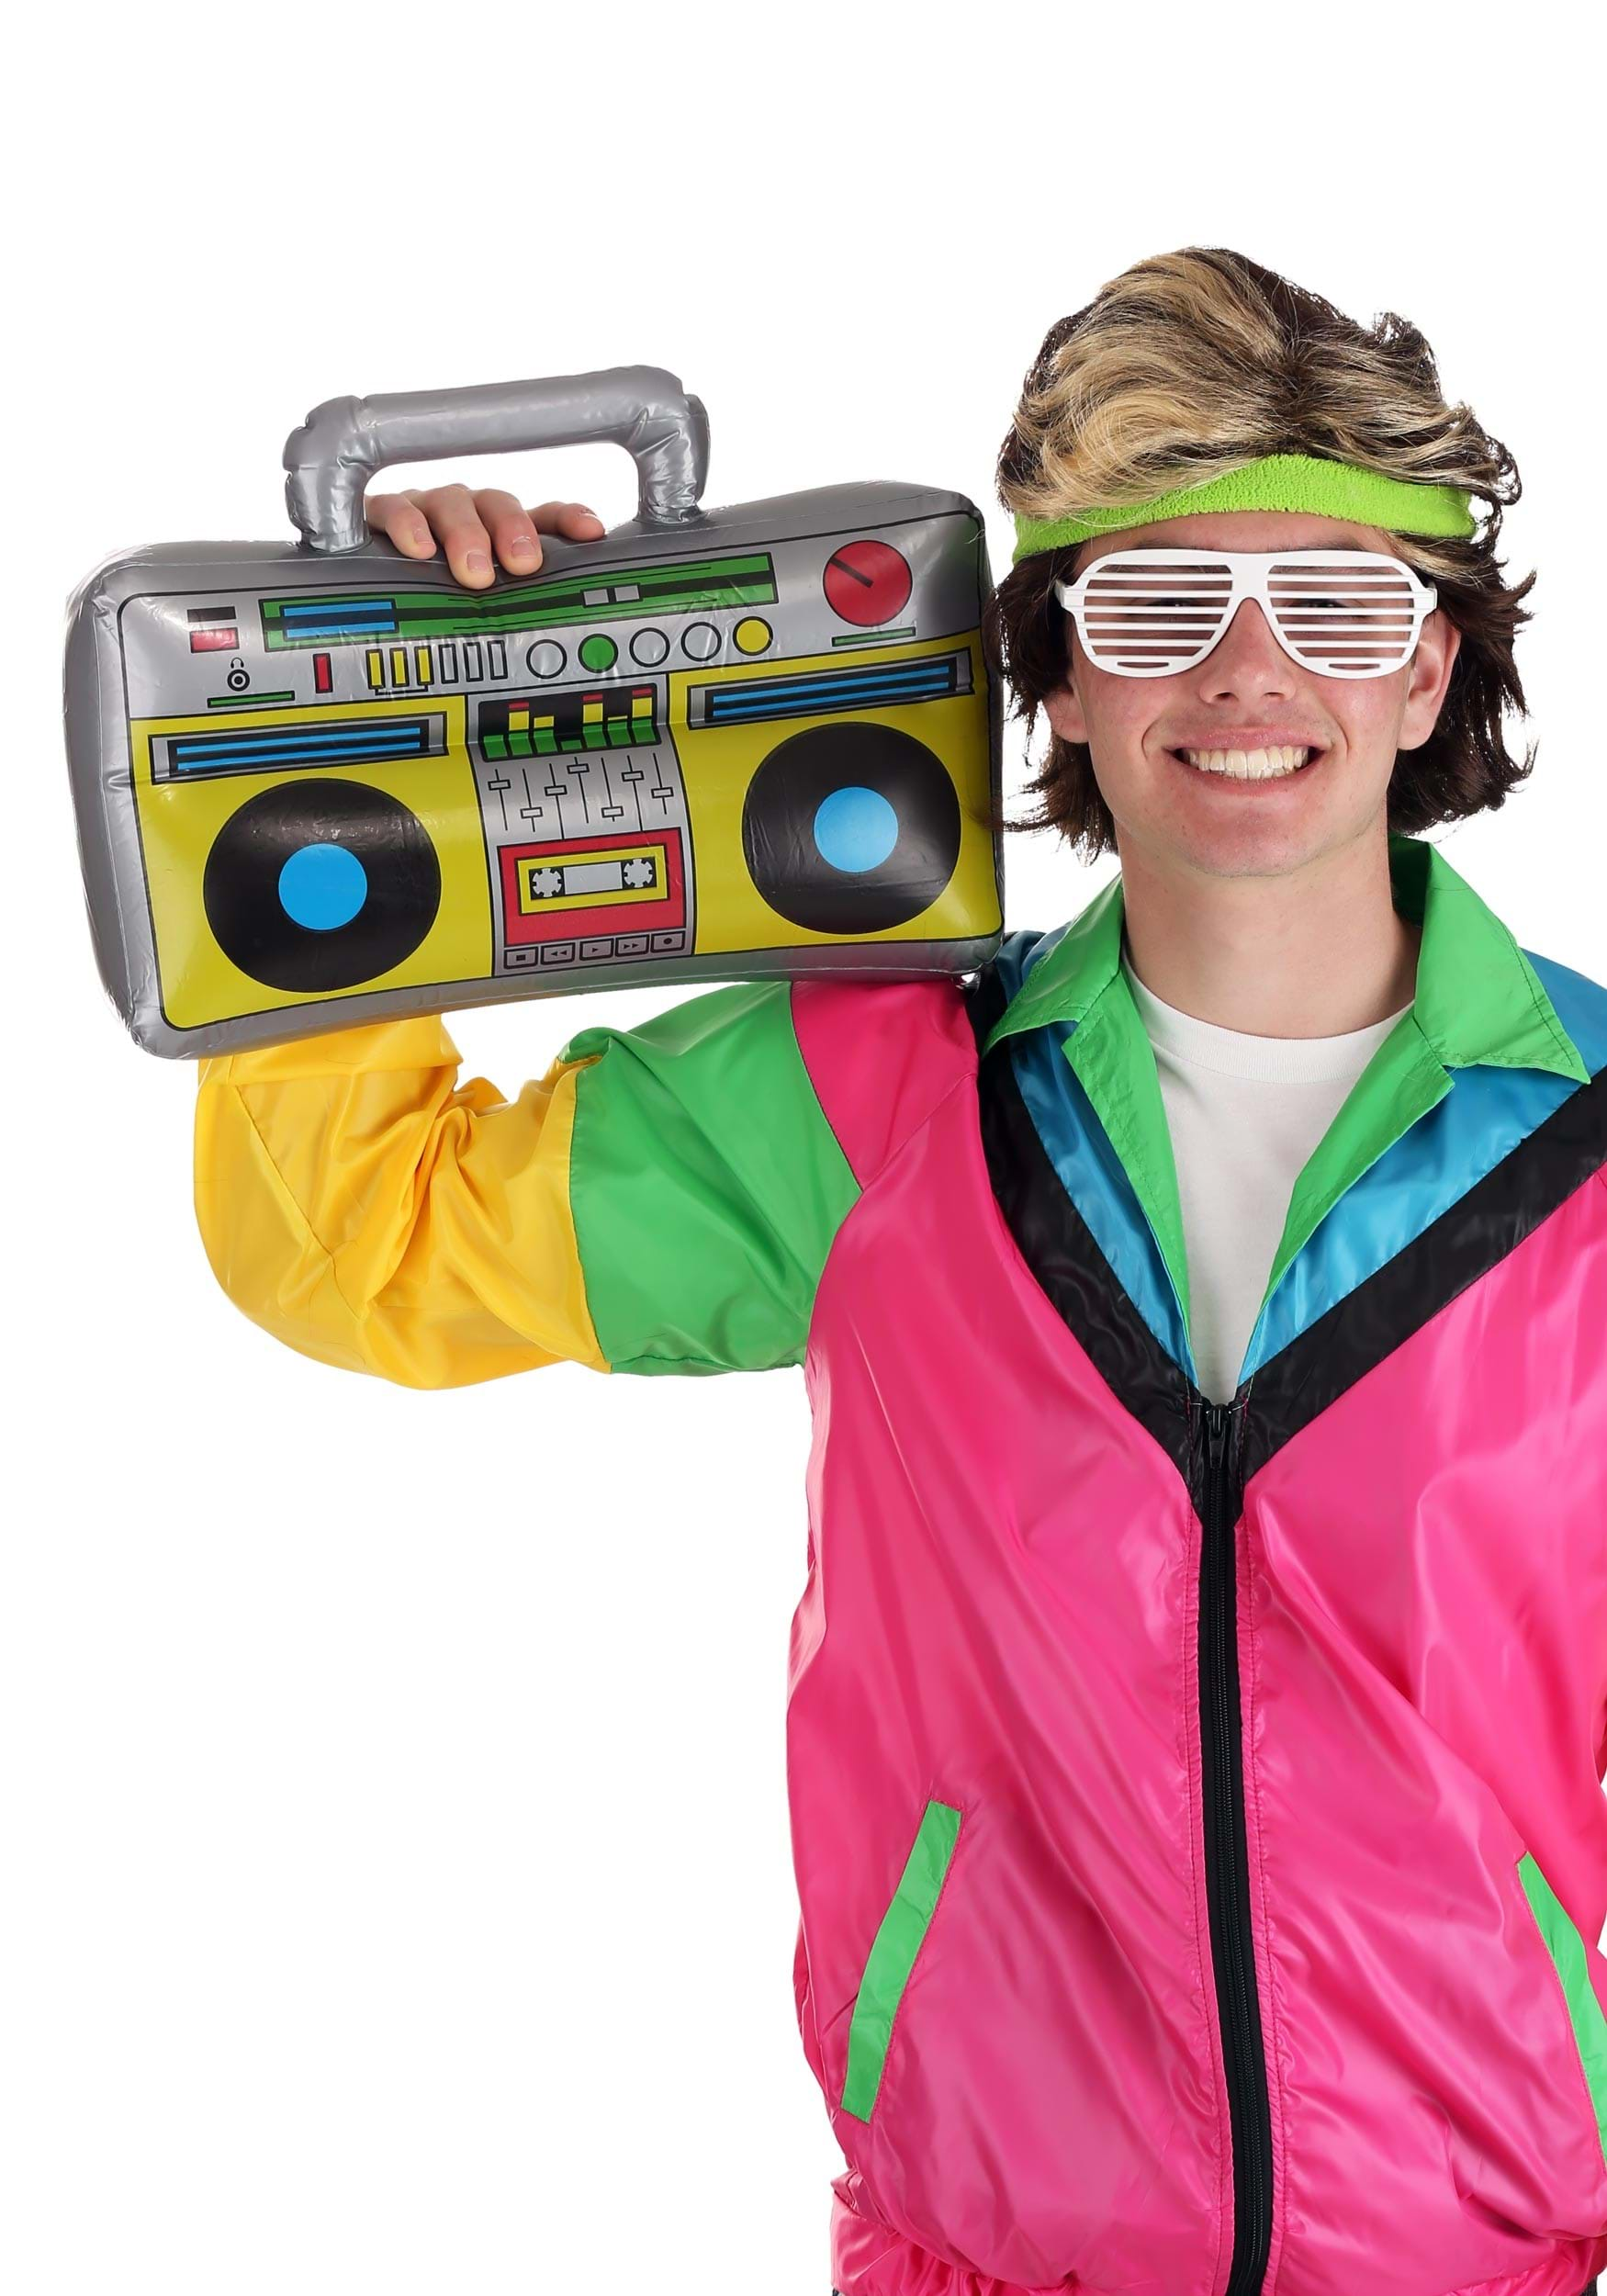 boombox. (With images) | Boombox  |80s Boombox